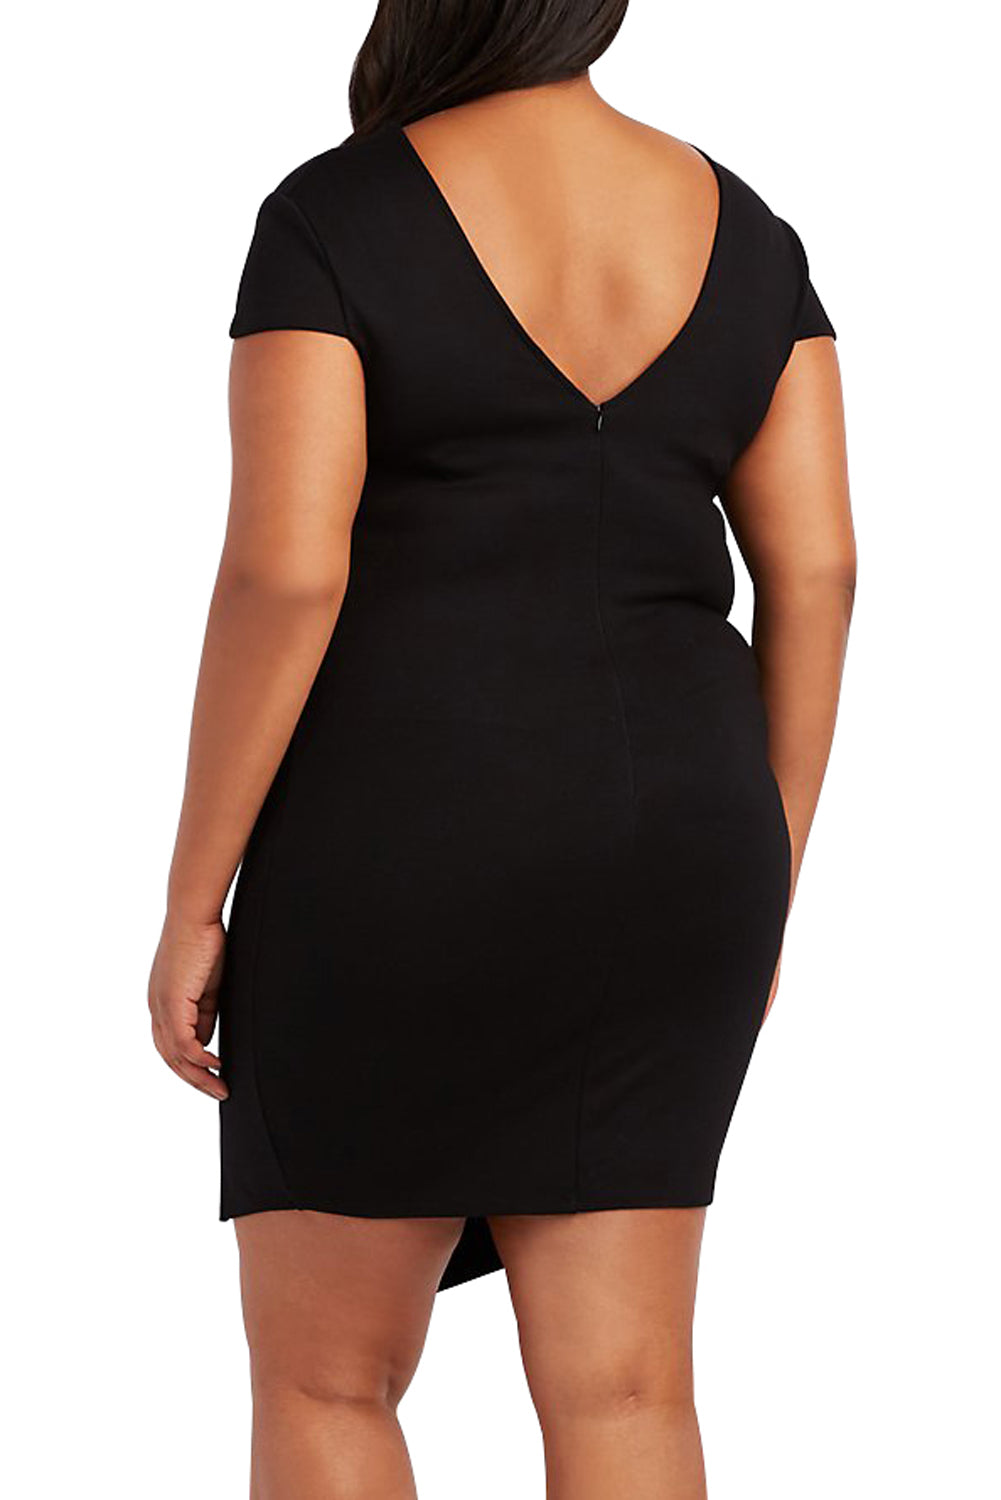 Plus Size Black Strappy Asymmetrical Bodycon Dress LAVELIQ - Laveliqus